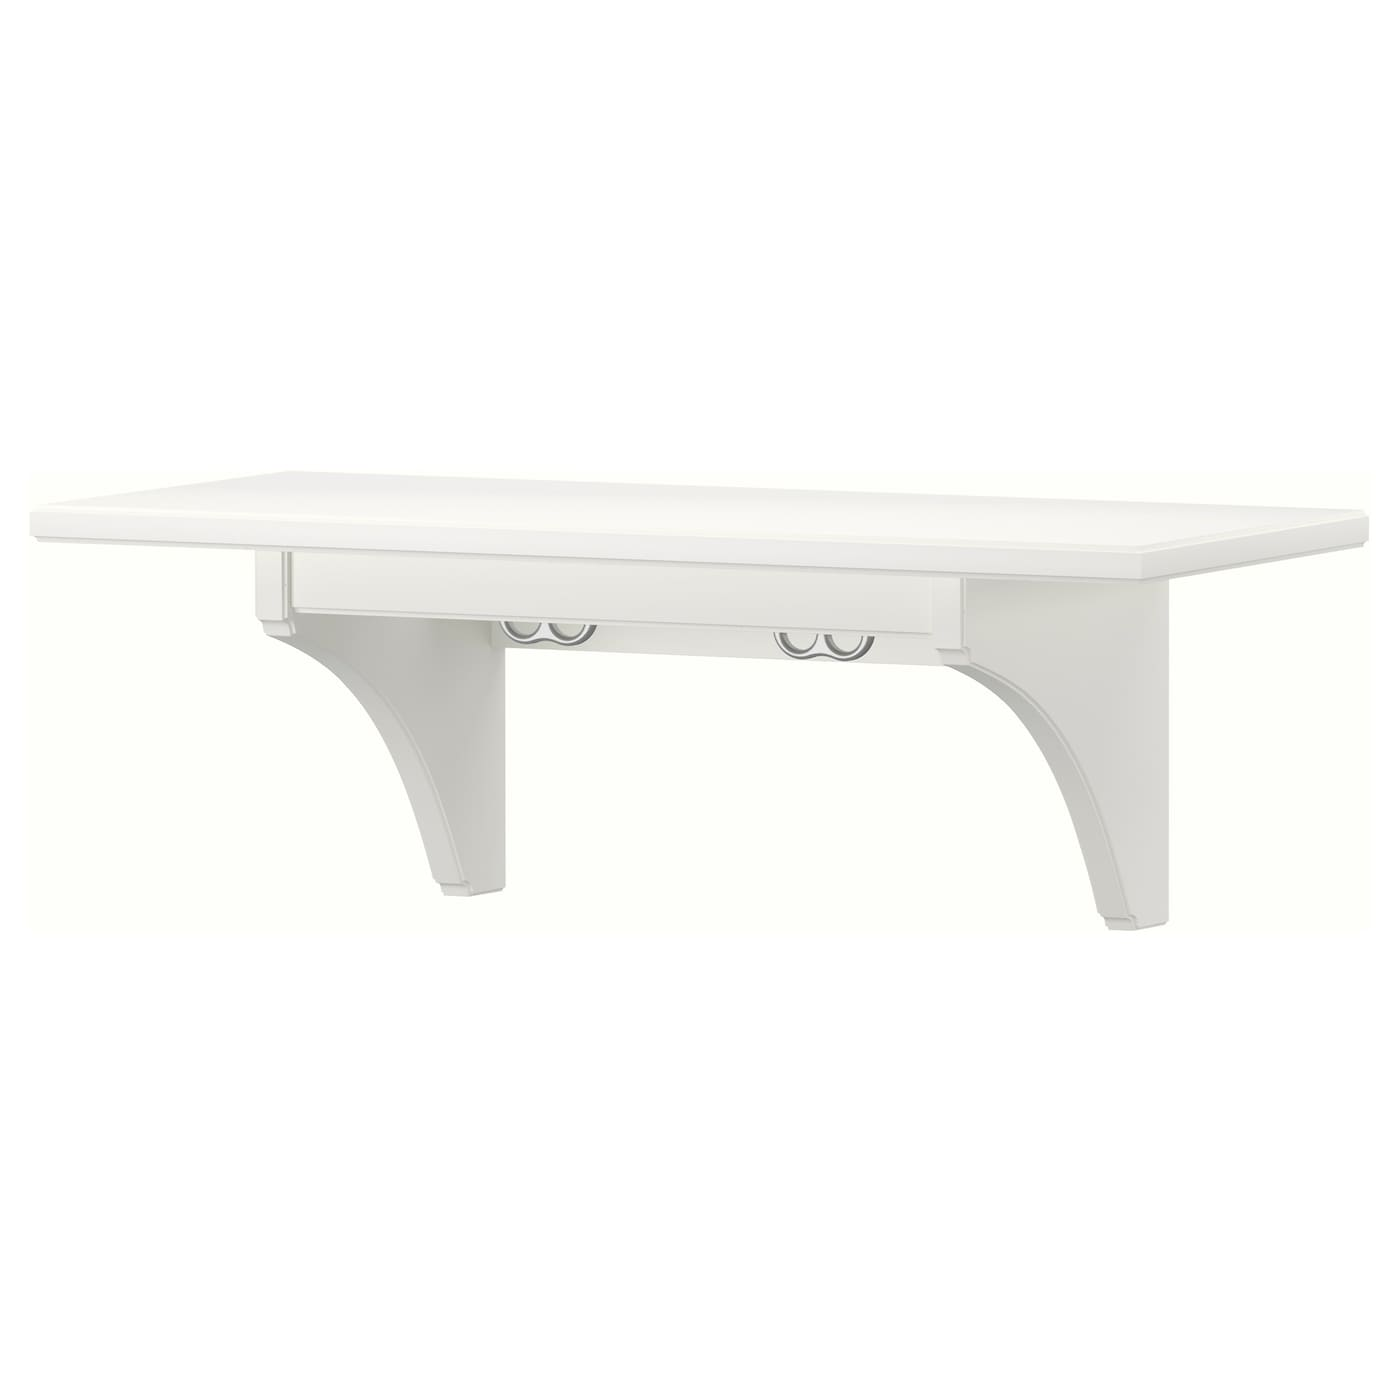 White Kitchen Shelf: STENSTORP Wall Shelf White 60 Cm